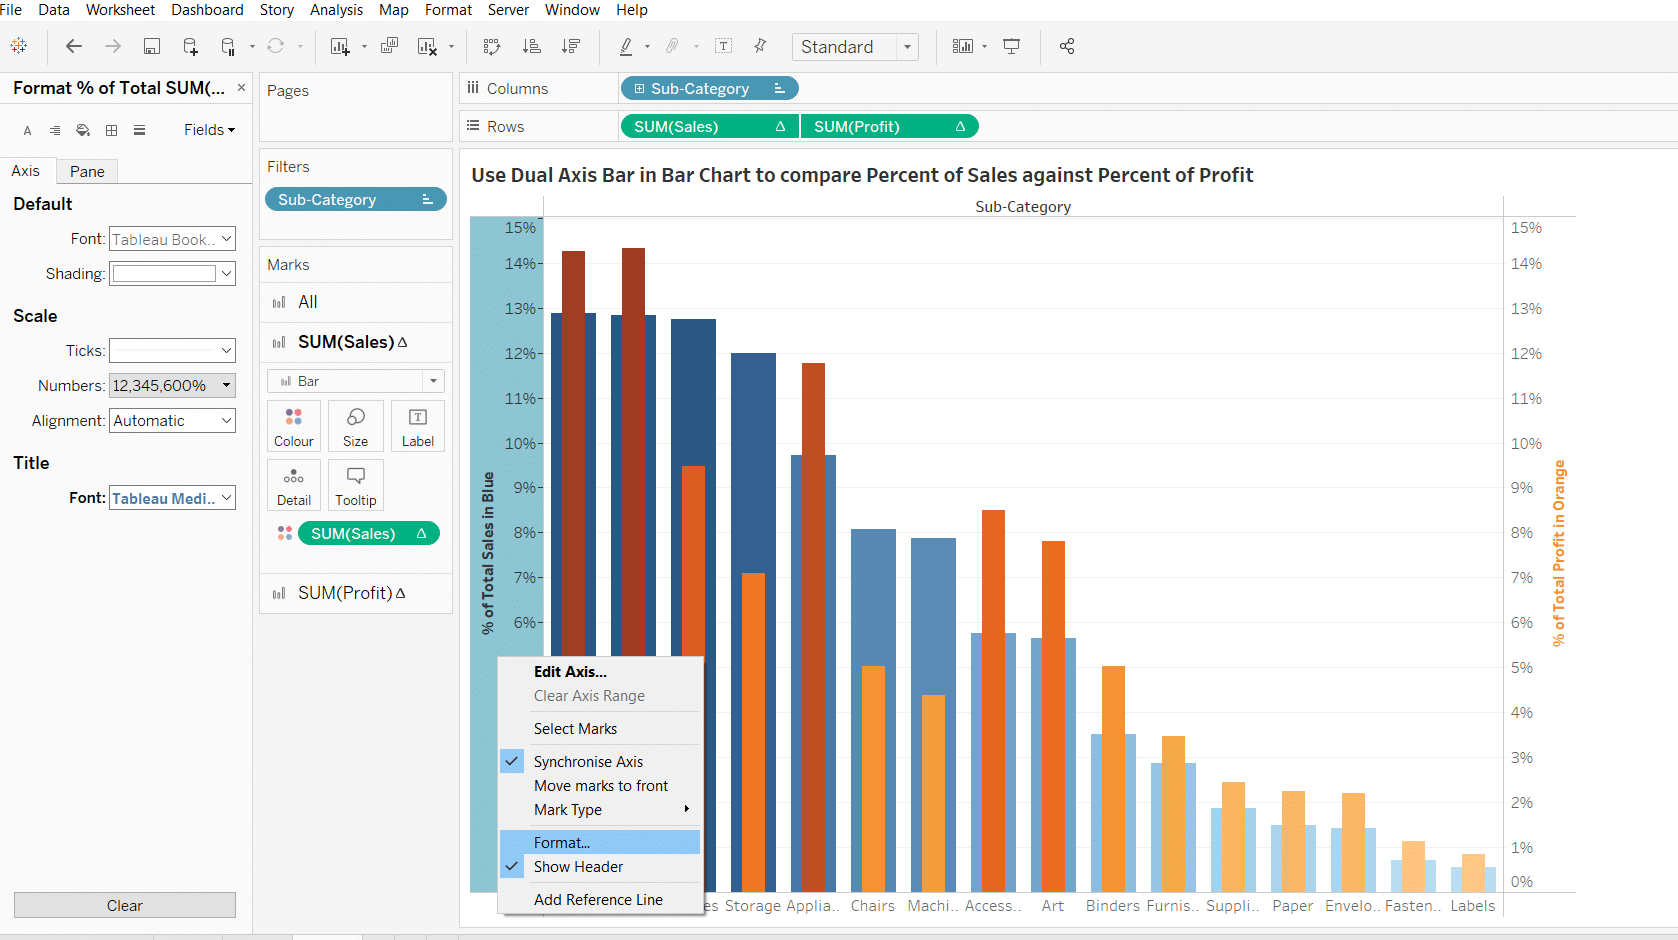 How to build a Dual Axis Bar in Bar Chart to compare Percent of Sales against Percent of Profit